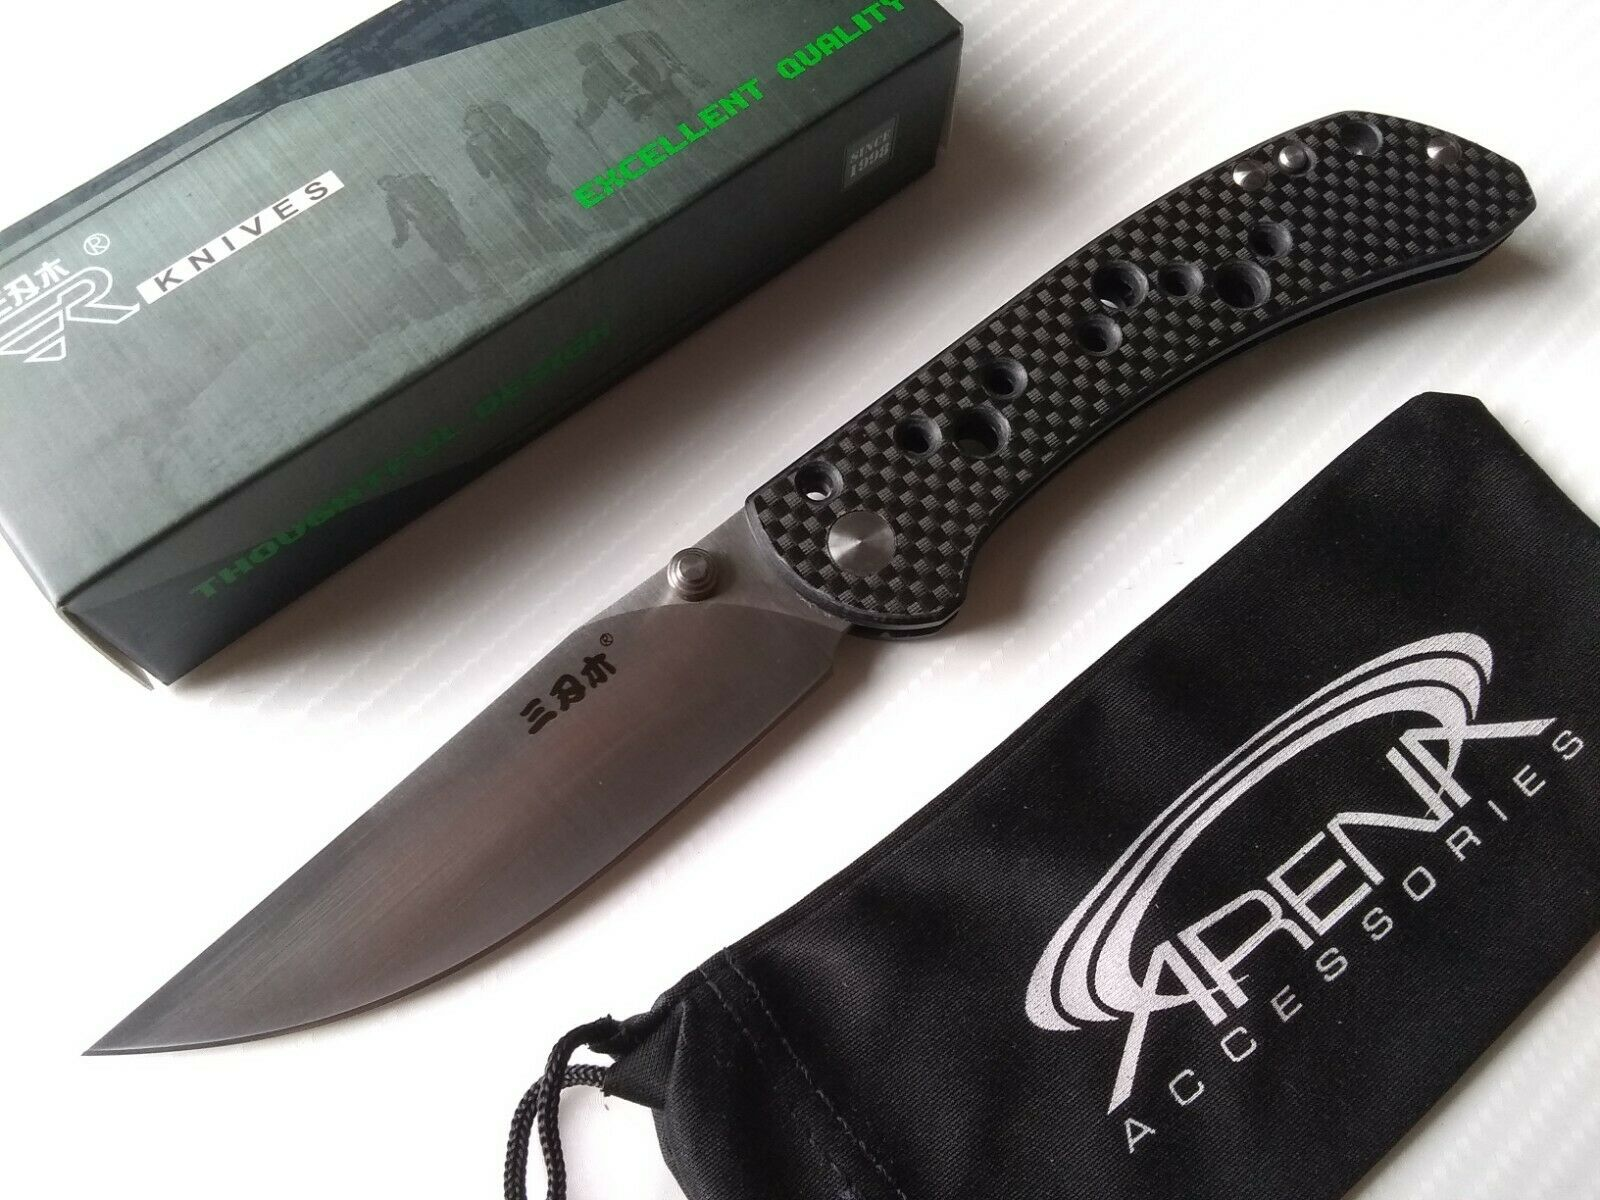 Sanrenmu 9165-KB Carbon Fiber Handle Locking Slipjoint Pocket Knife 12C27 Sandvik Blade SRM